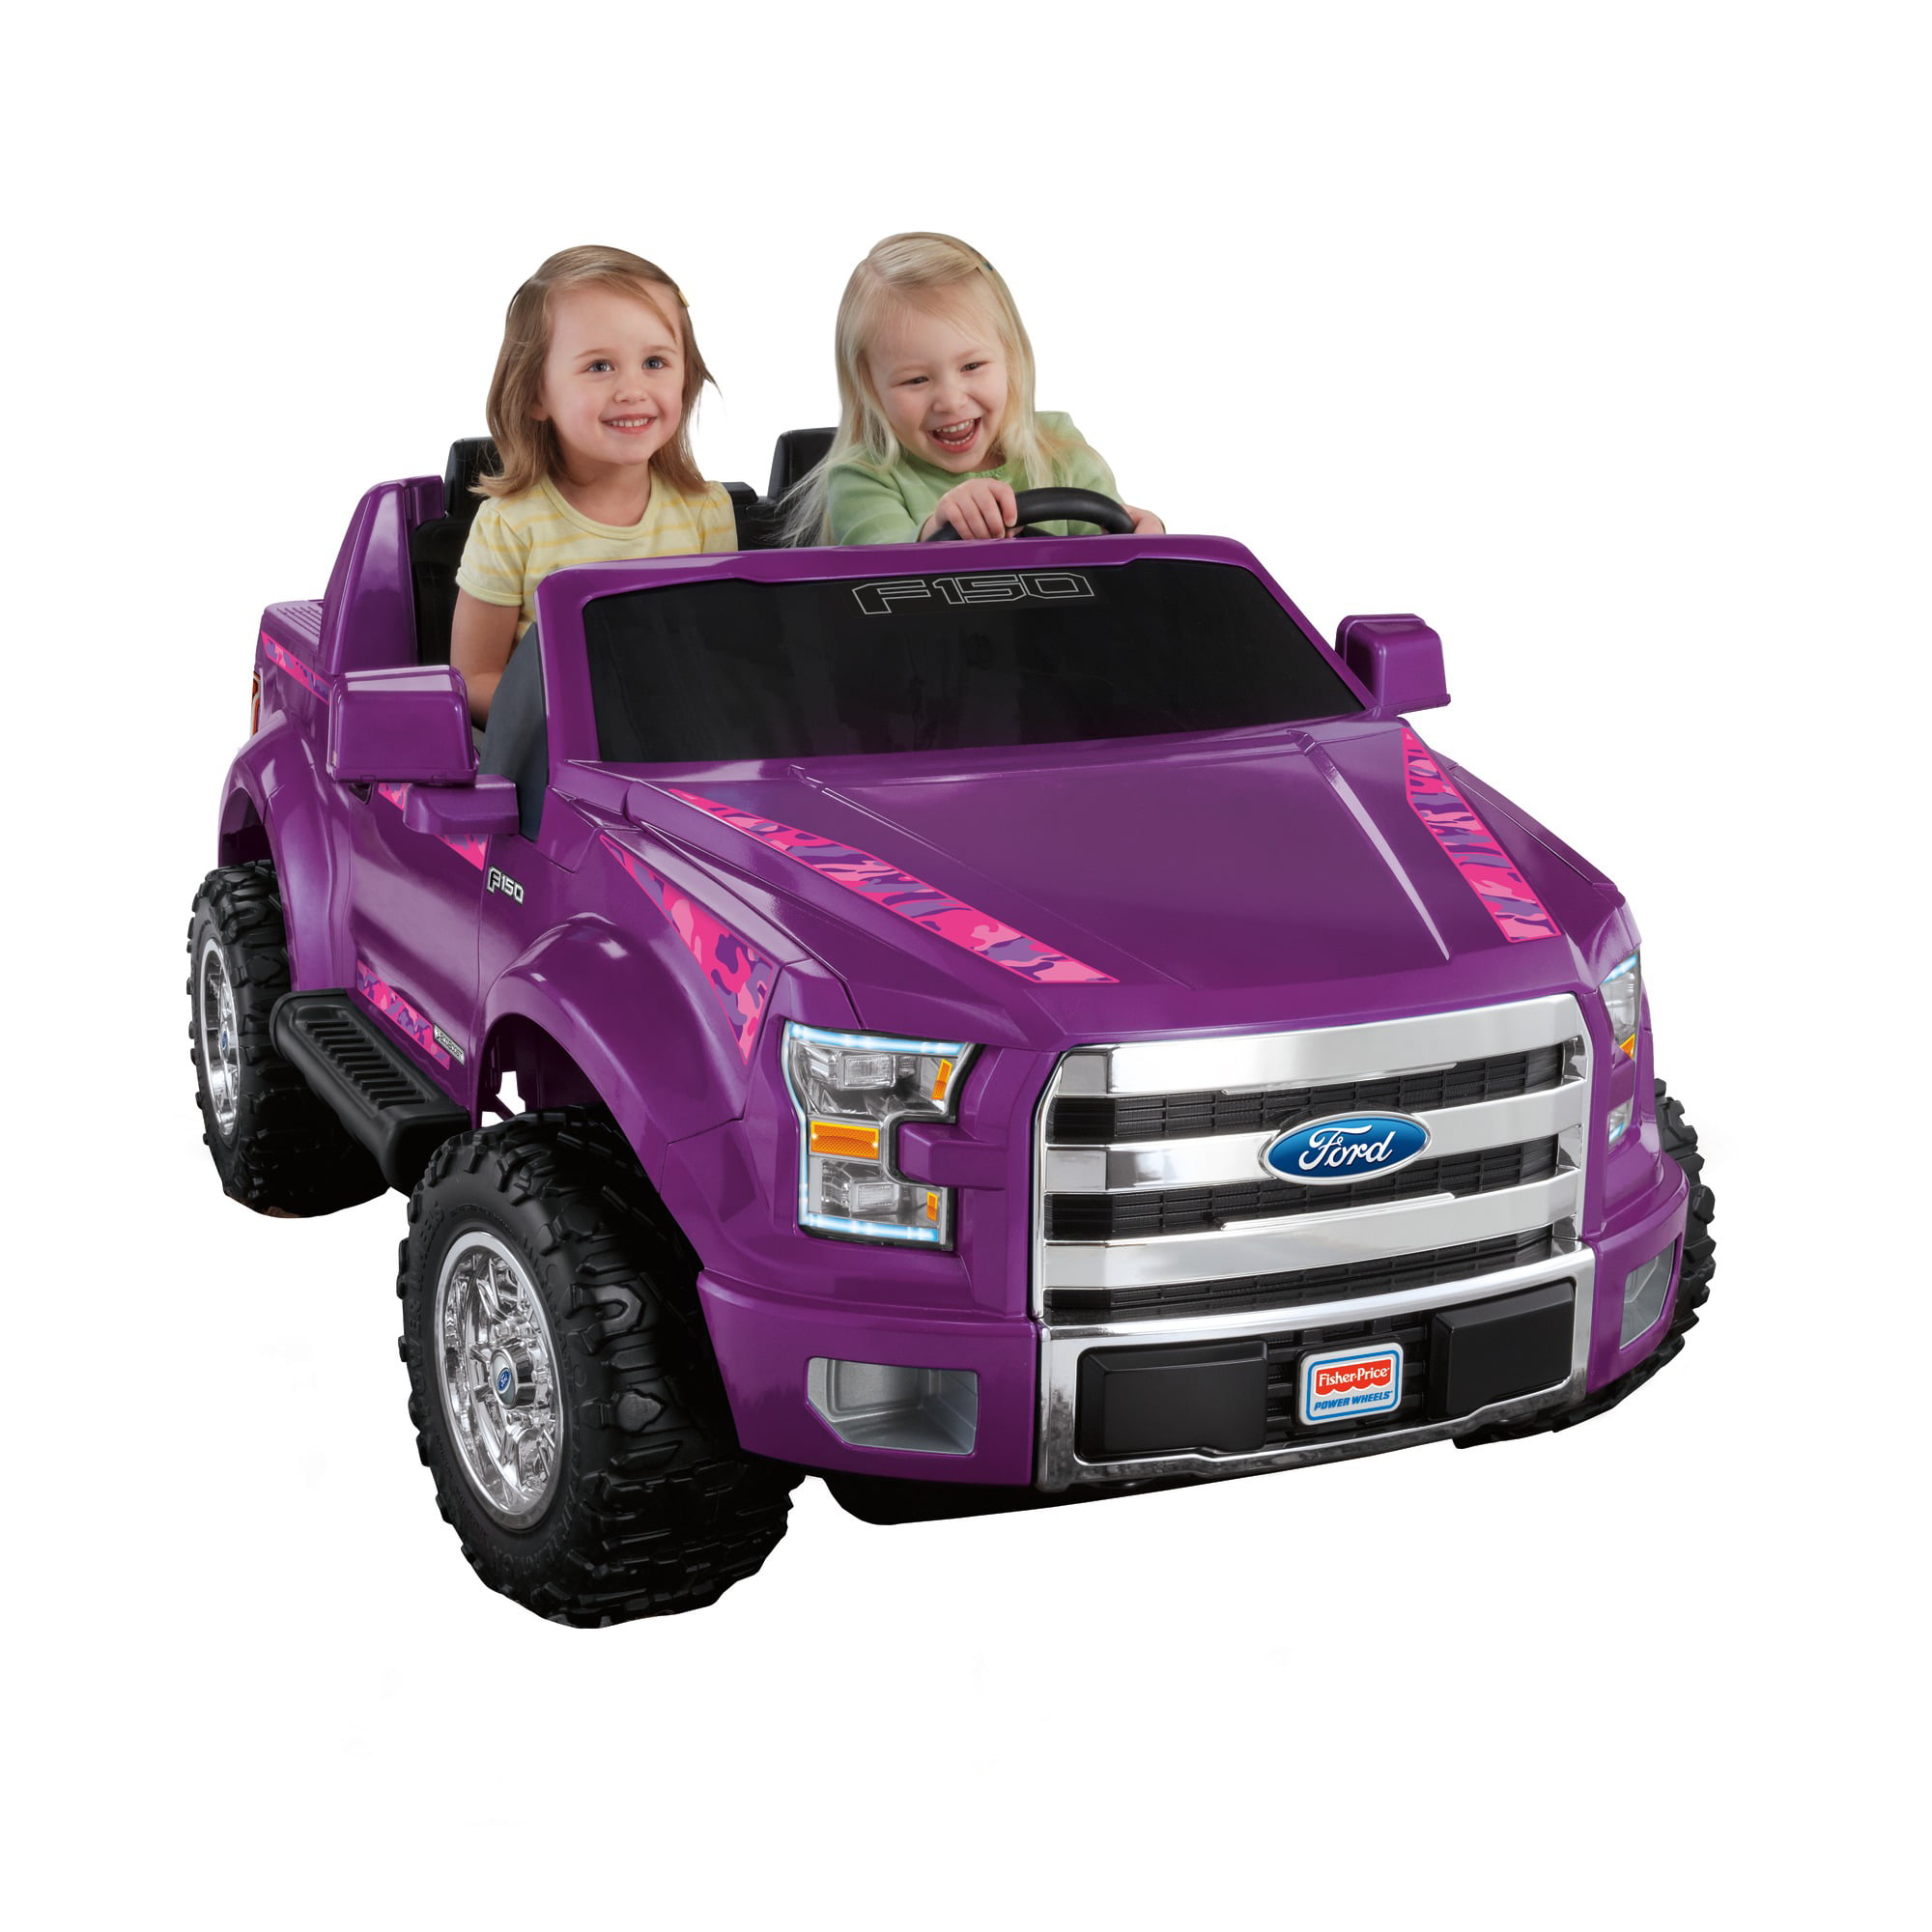 Power Wheels Ford F150 by Fisher-Price